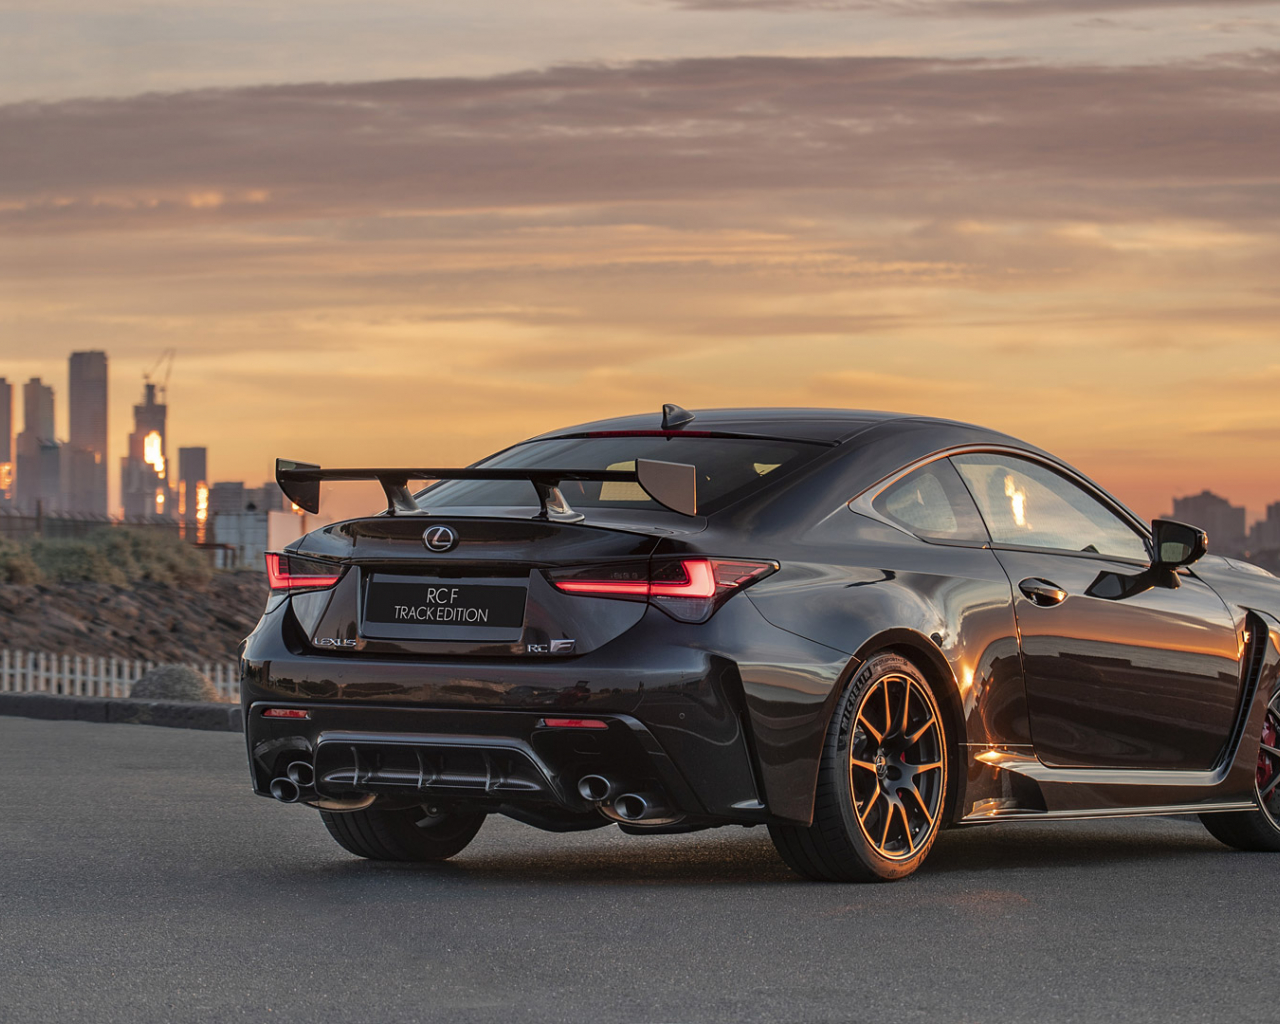 Free Download 2020 Lexus Rc F Track Edition Wallpapers Hd Images Wsupercars 1920x1080 For Your Desktop Mobile Tablet Explore 41 Rc Wallpaper Rc Wallpaper Rc Car Wallpaper Rc Cars Wallpapers